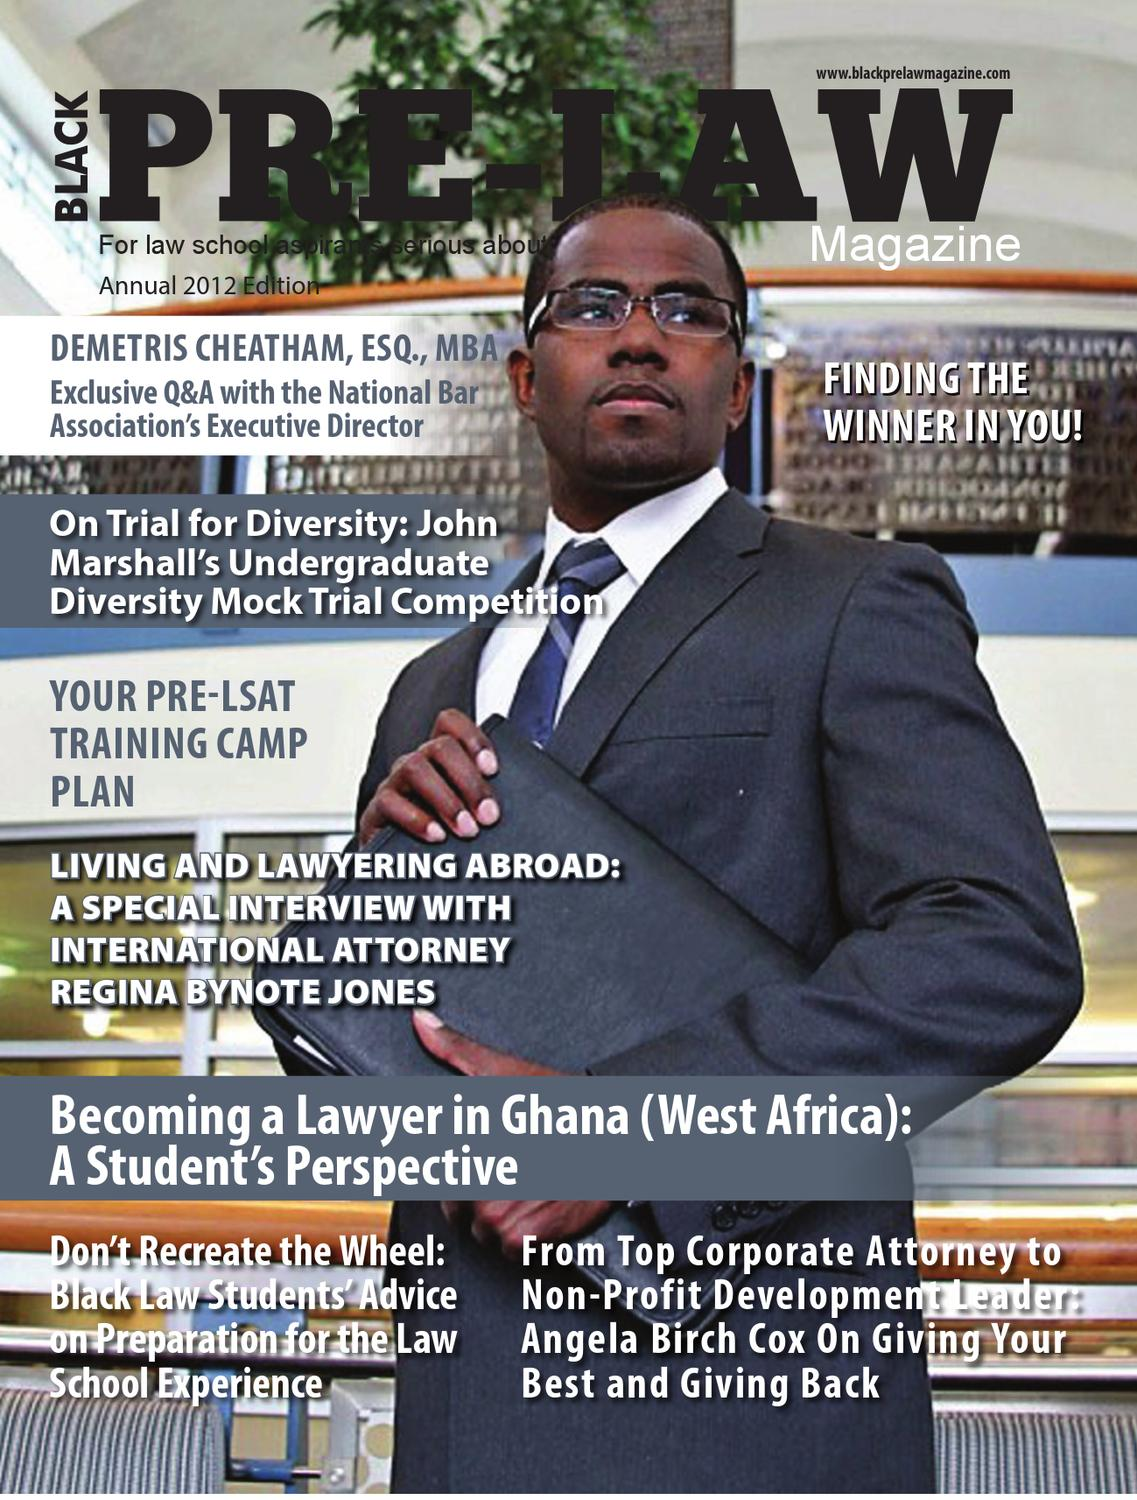 king s herald spring by king s university college issuu black pre law magazine annual 2012 edition